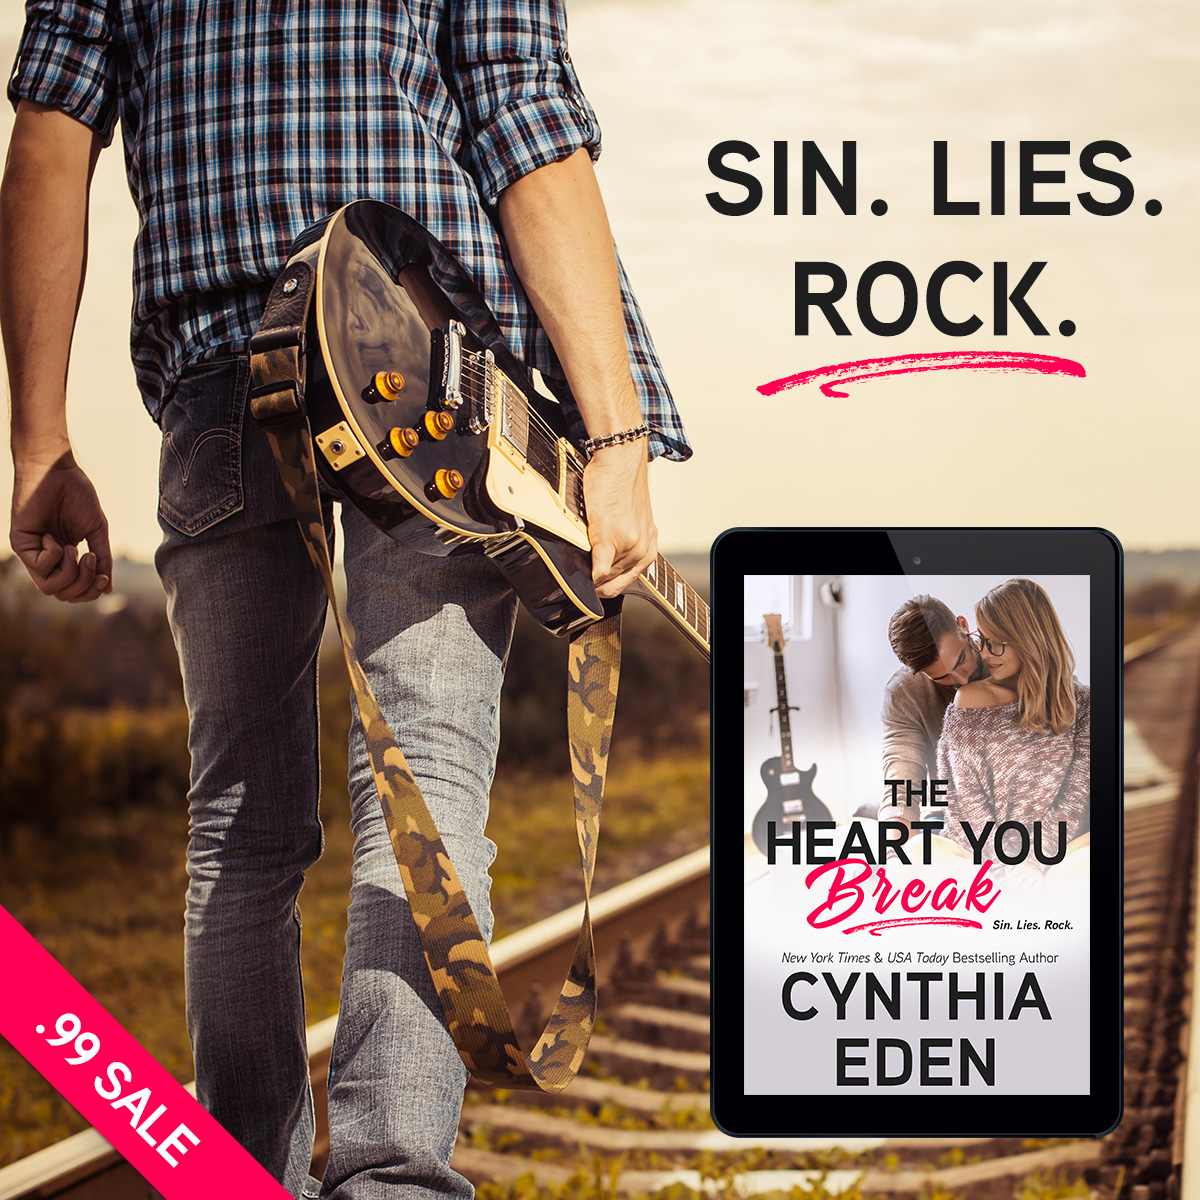 Sin. Lies. Rock. THE HEART YOU BREAK is on sale for 99 cents.